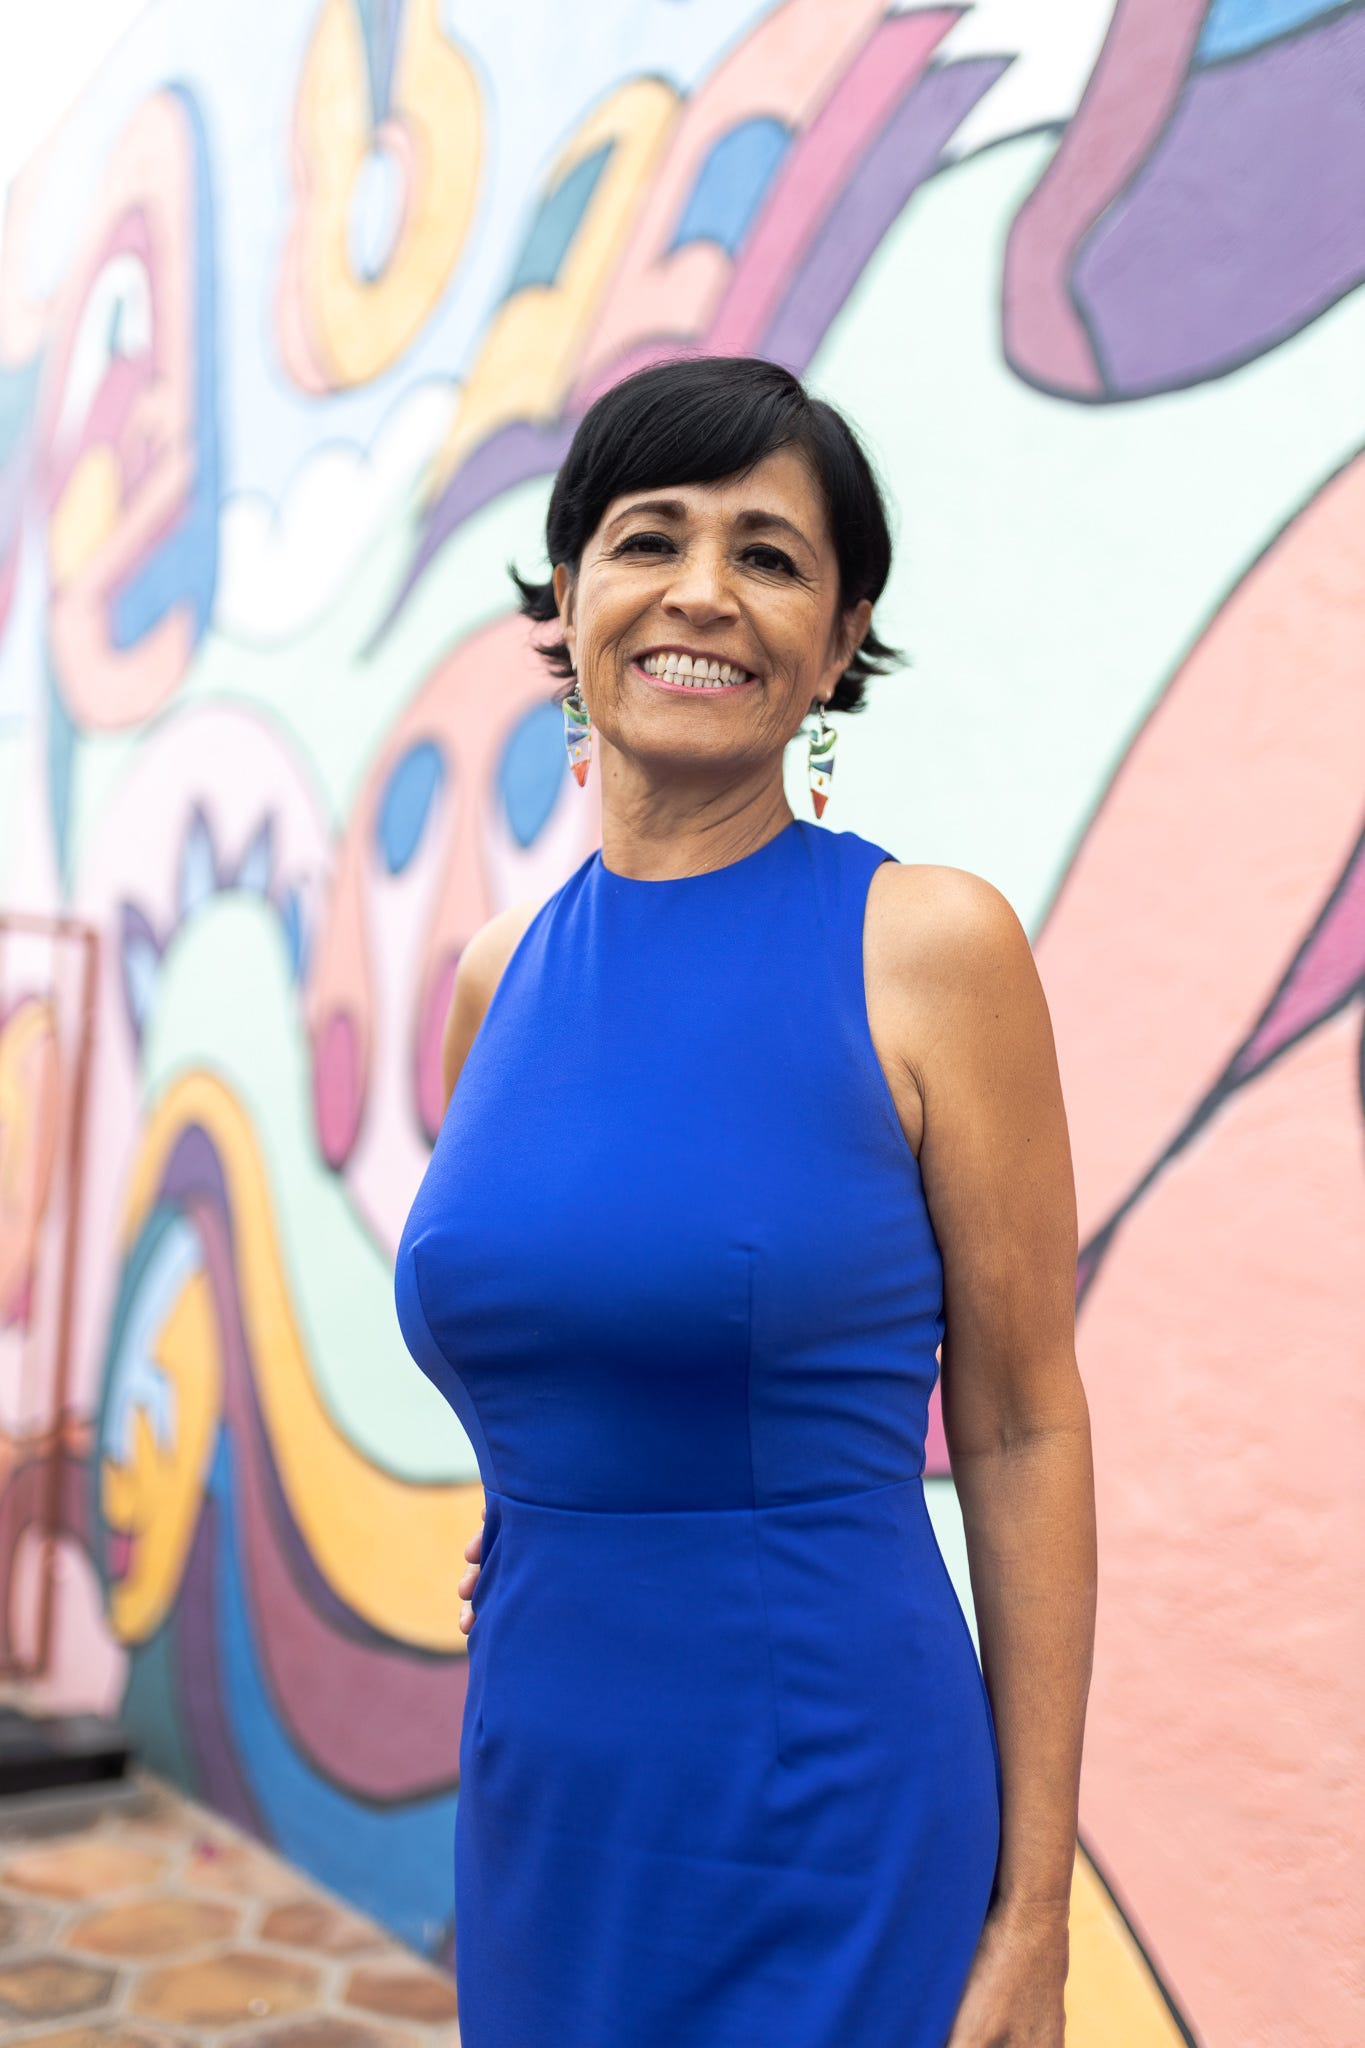 """""""The unknown causes fear,"""" said Yolima Otálora, Colombian immigrant. And that is why education about the different Latino communities and their contributionsshould be made available to all, she said. Only in this way can progress occur, she said."""